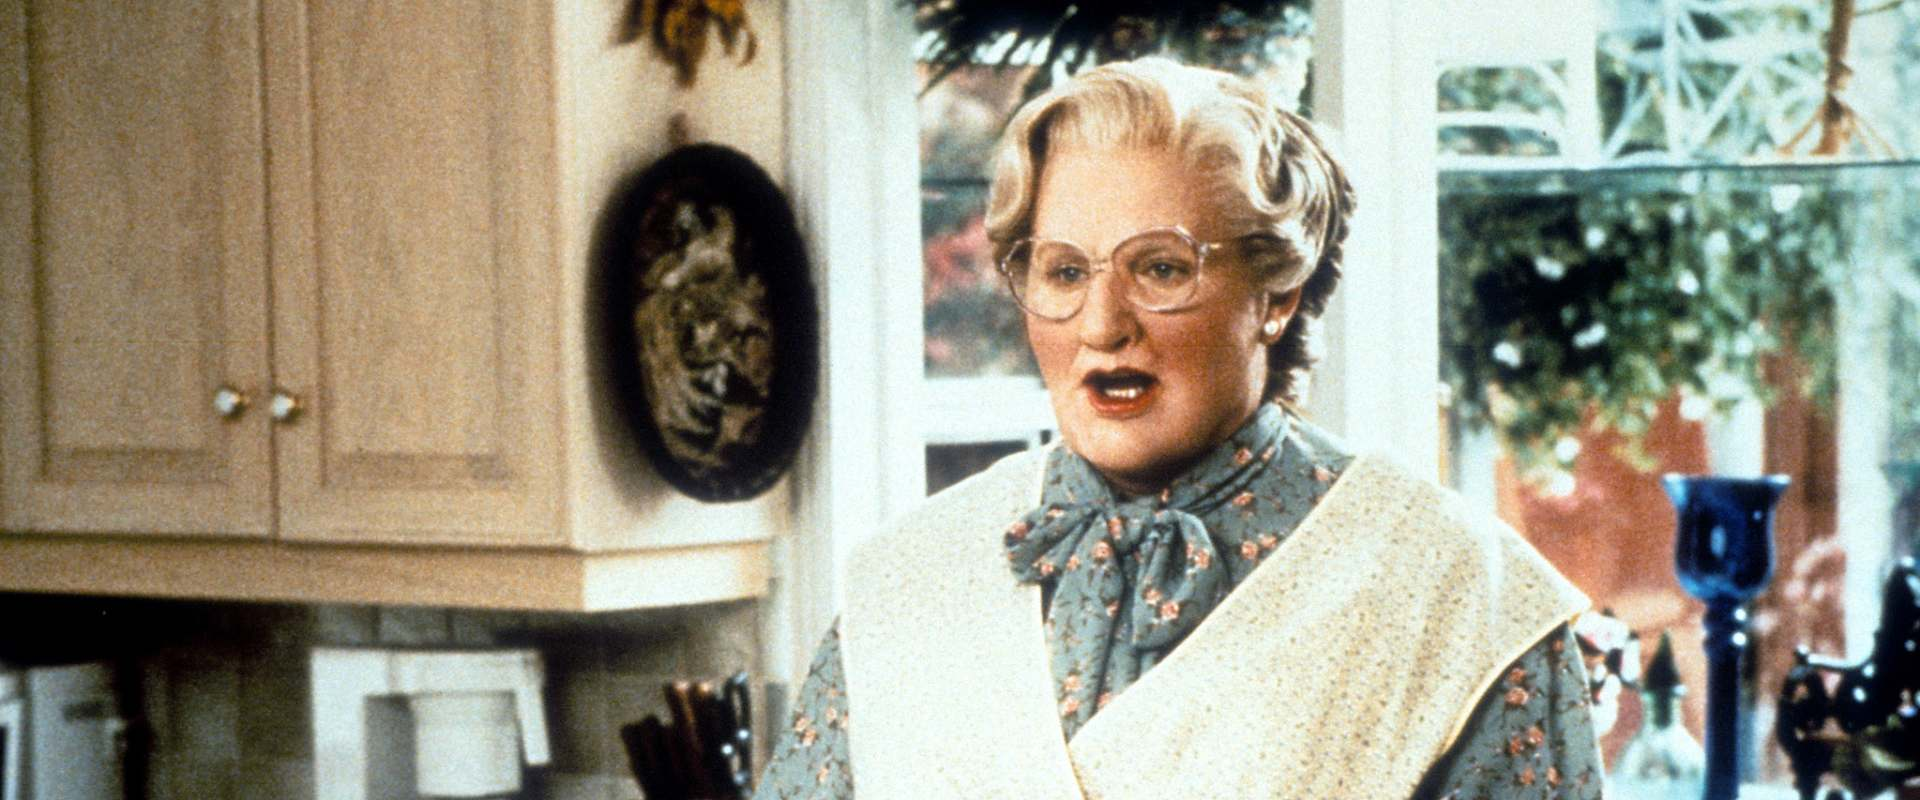 Mrs. Doubtfire background 2